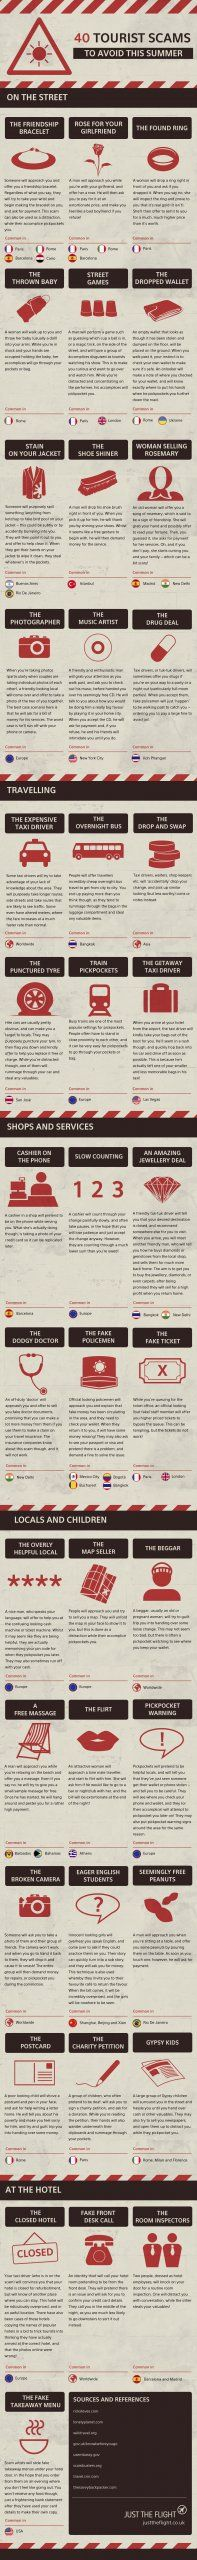 Thinking about traveling this summer? We get warned every year, but watch out for tourist scams when traveling abroad. Check out this very cool infographic that tells you just about every tourist scam in existence. Travel Info, Travel Bugs, Travel Advice, Travel Hacks, Travel Guide, Travel Deals, Oh The Places You'll Go, Places To Travel, Destination Voyage